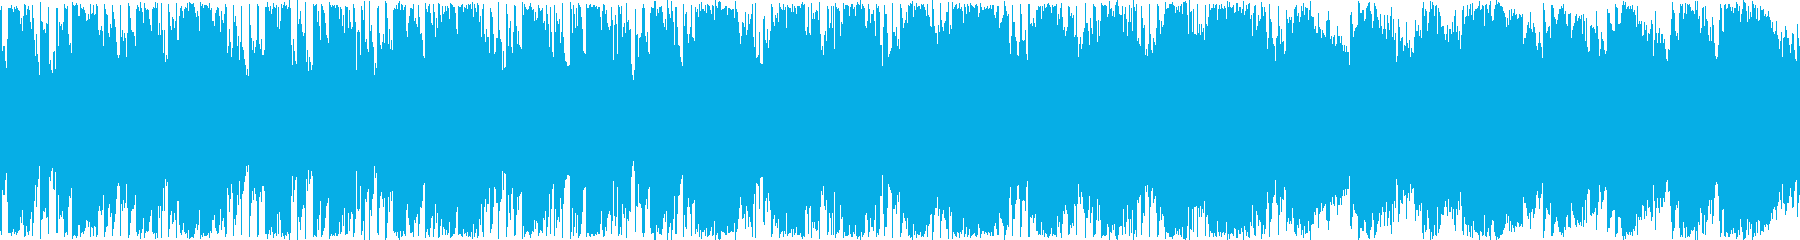 Not too dark but sad electronic music's reproduced waveform